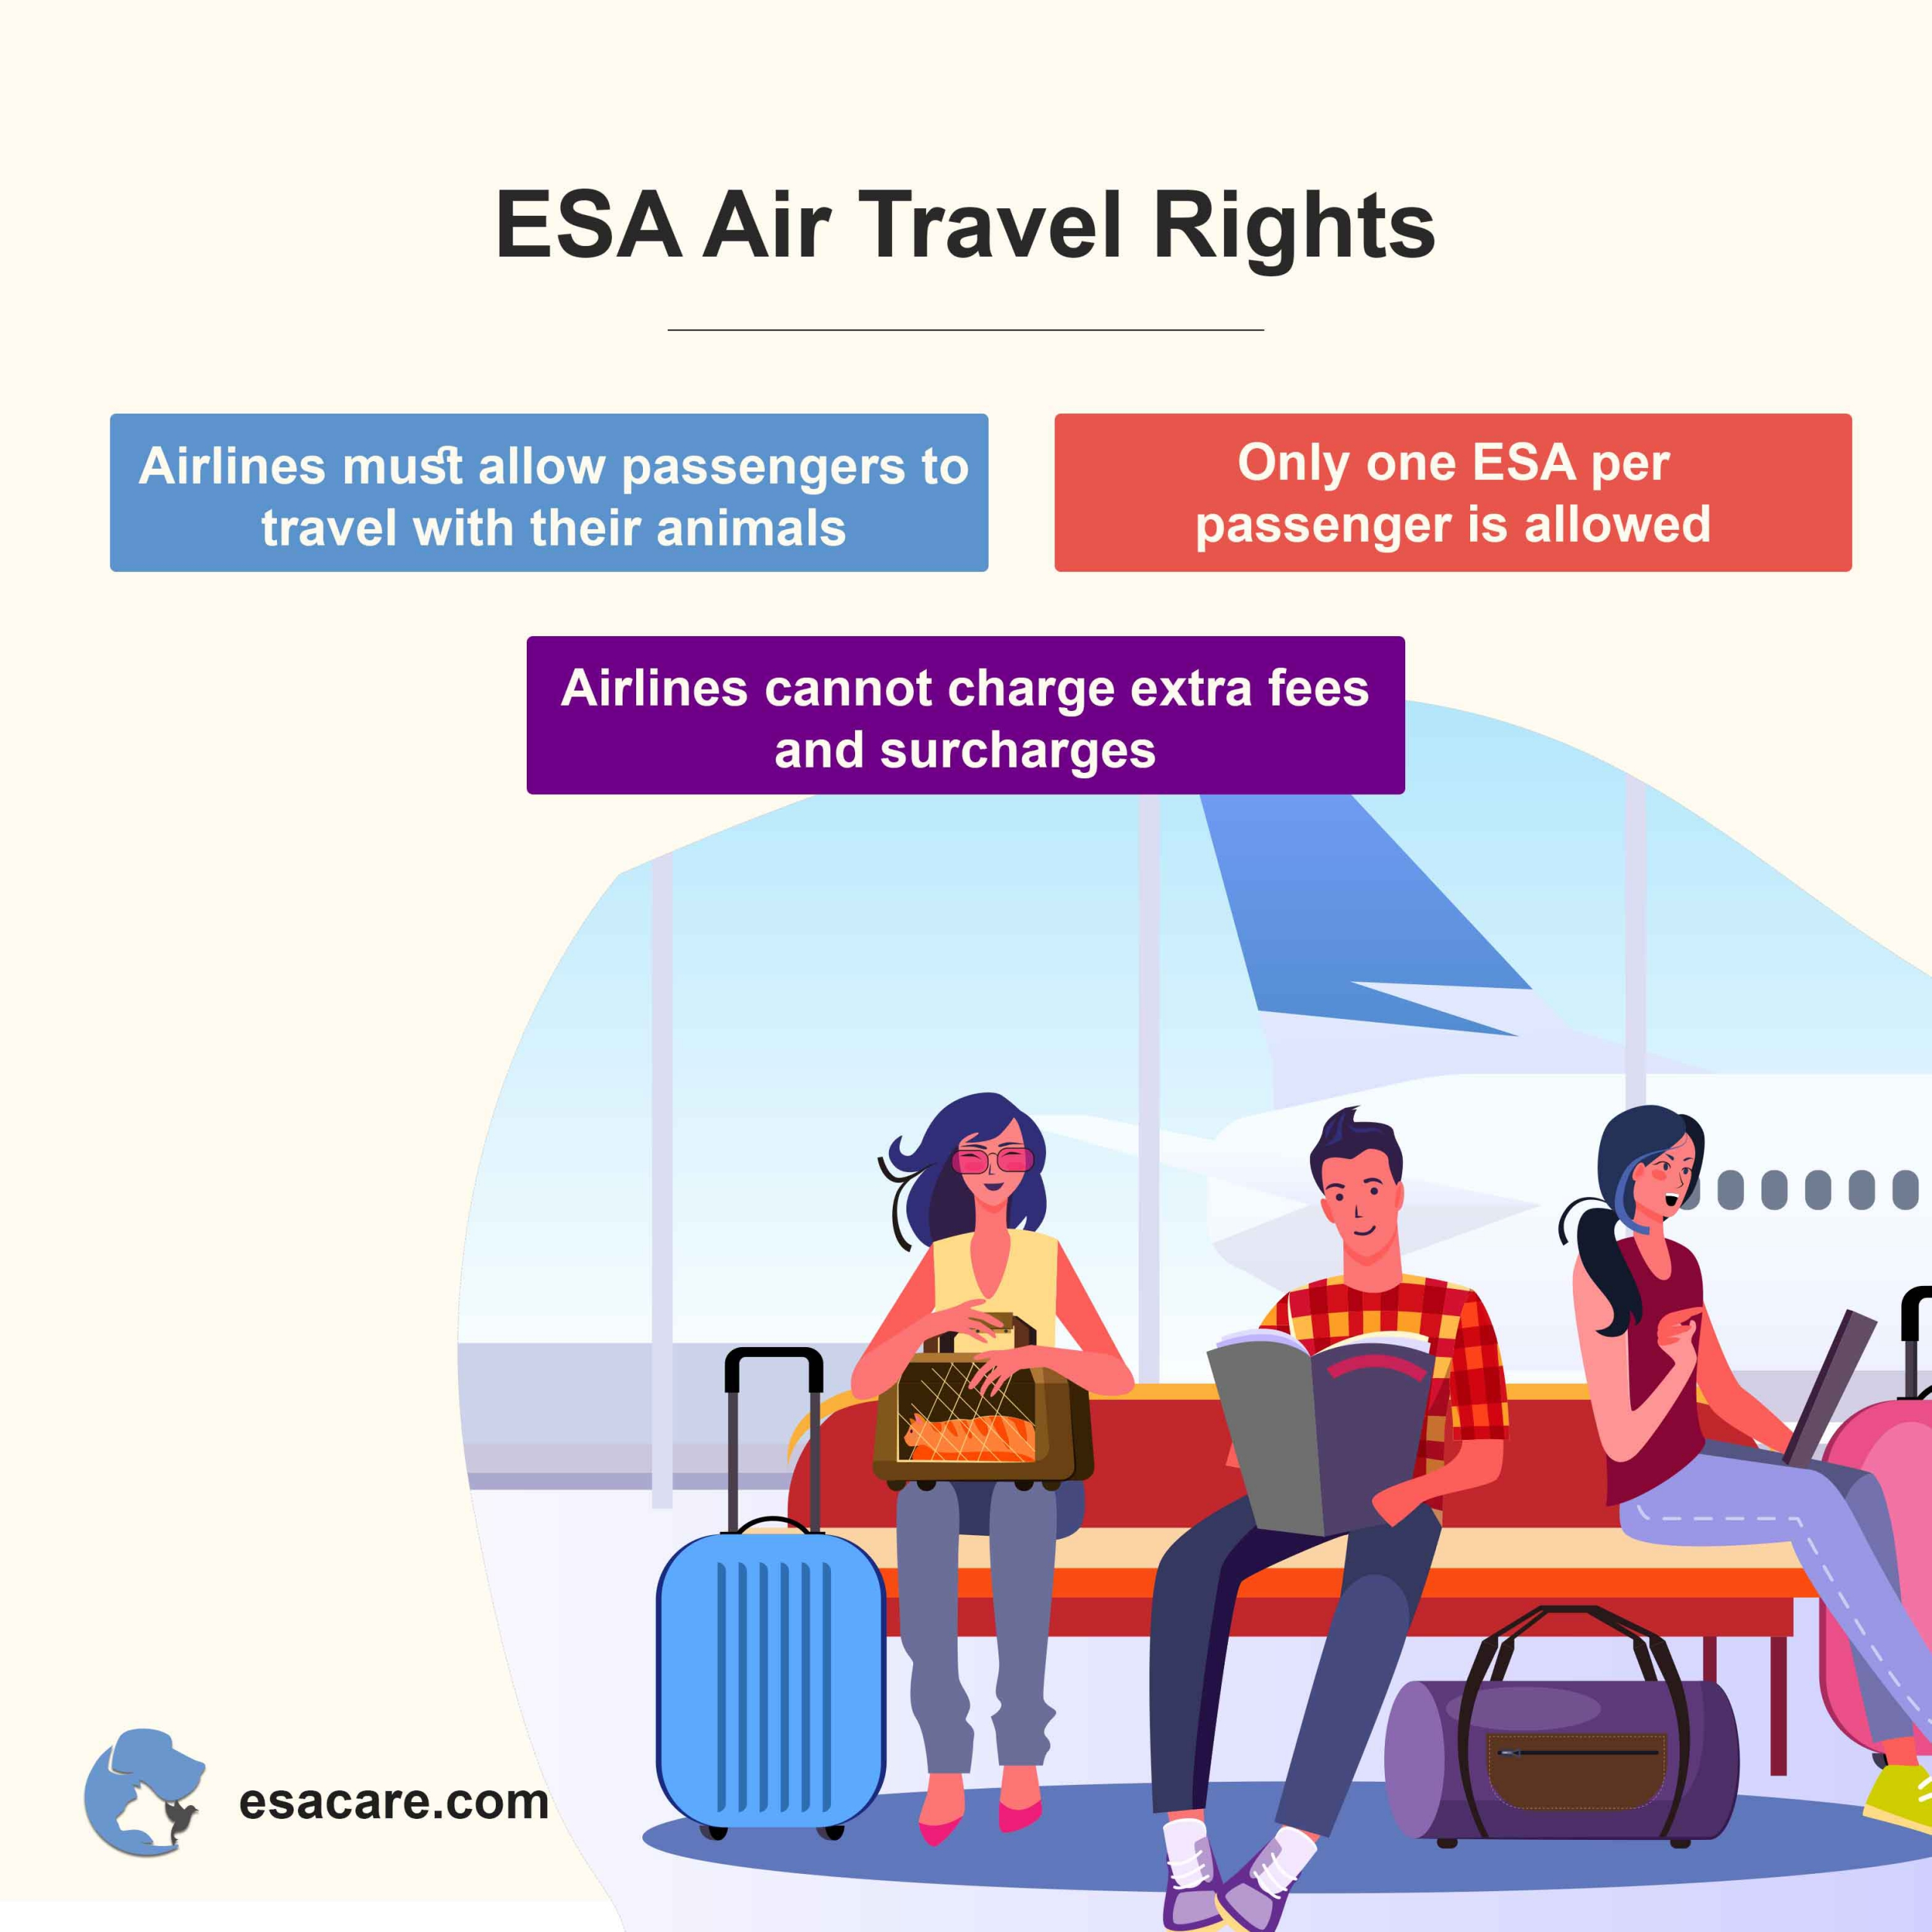 esa air travel rights